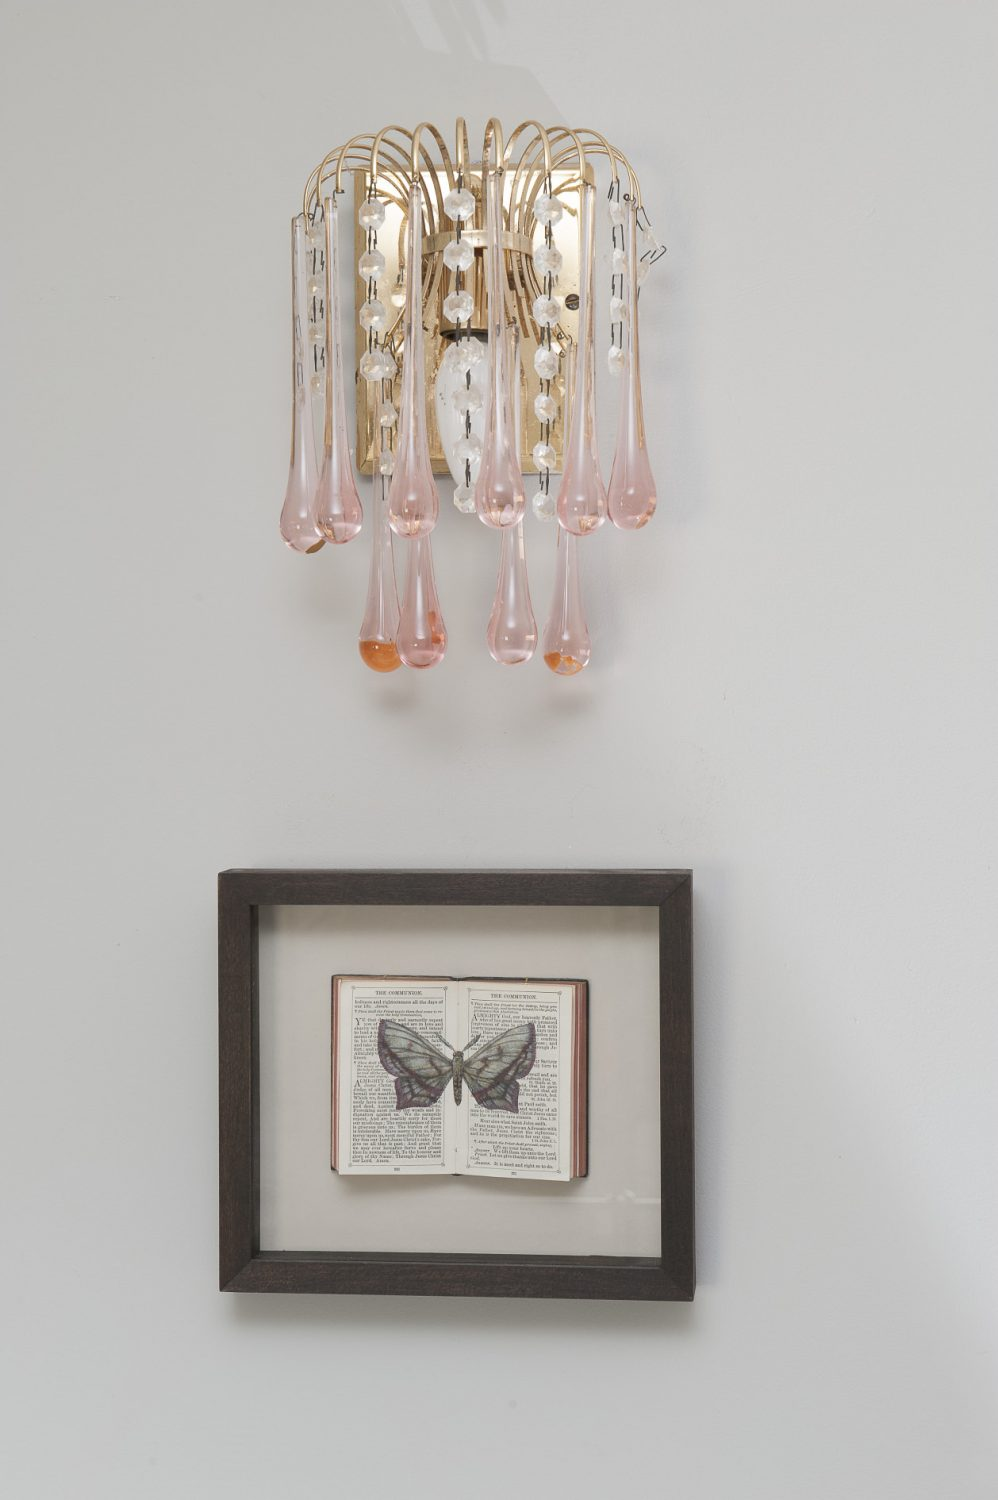 The walls are home to a collection of artist Helen Hunt's lepidopterology studies